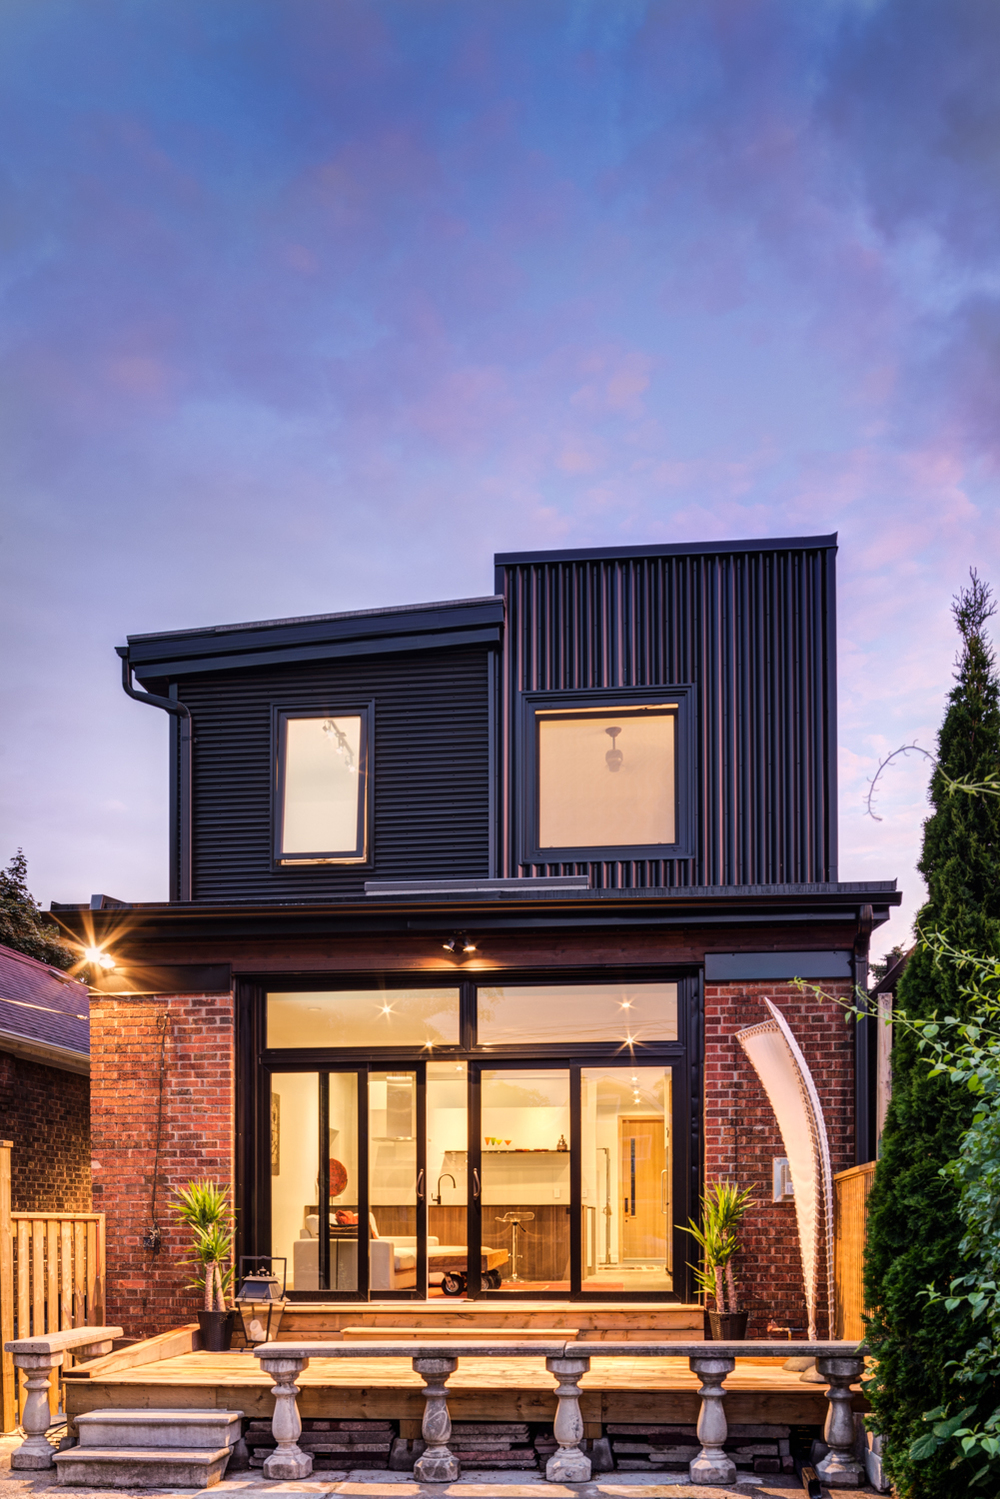 Junction bungalow by Stamp. Tilt-turn windows by EVW.